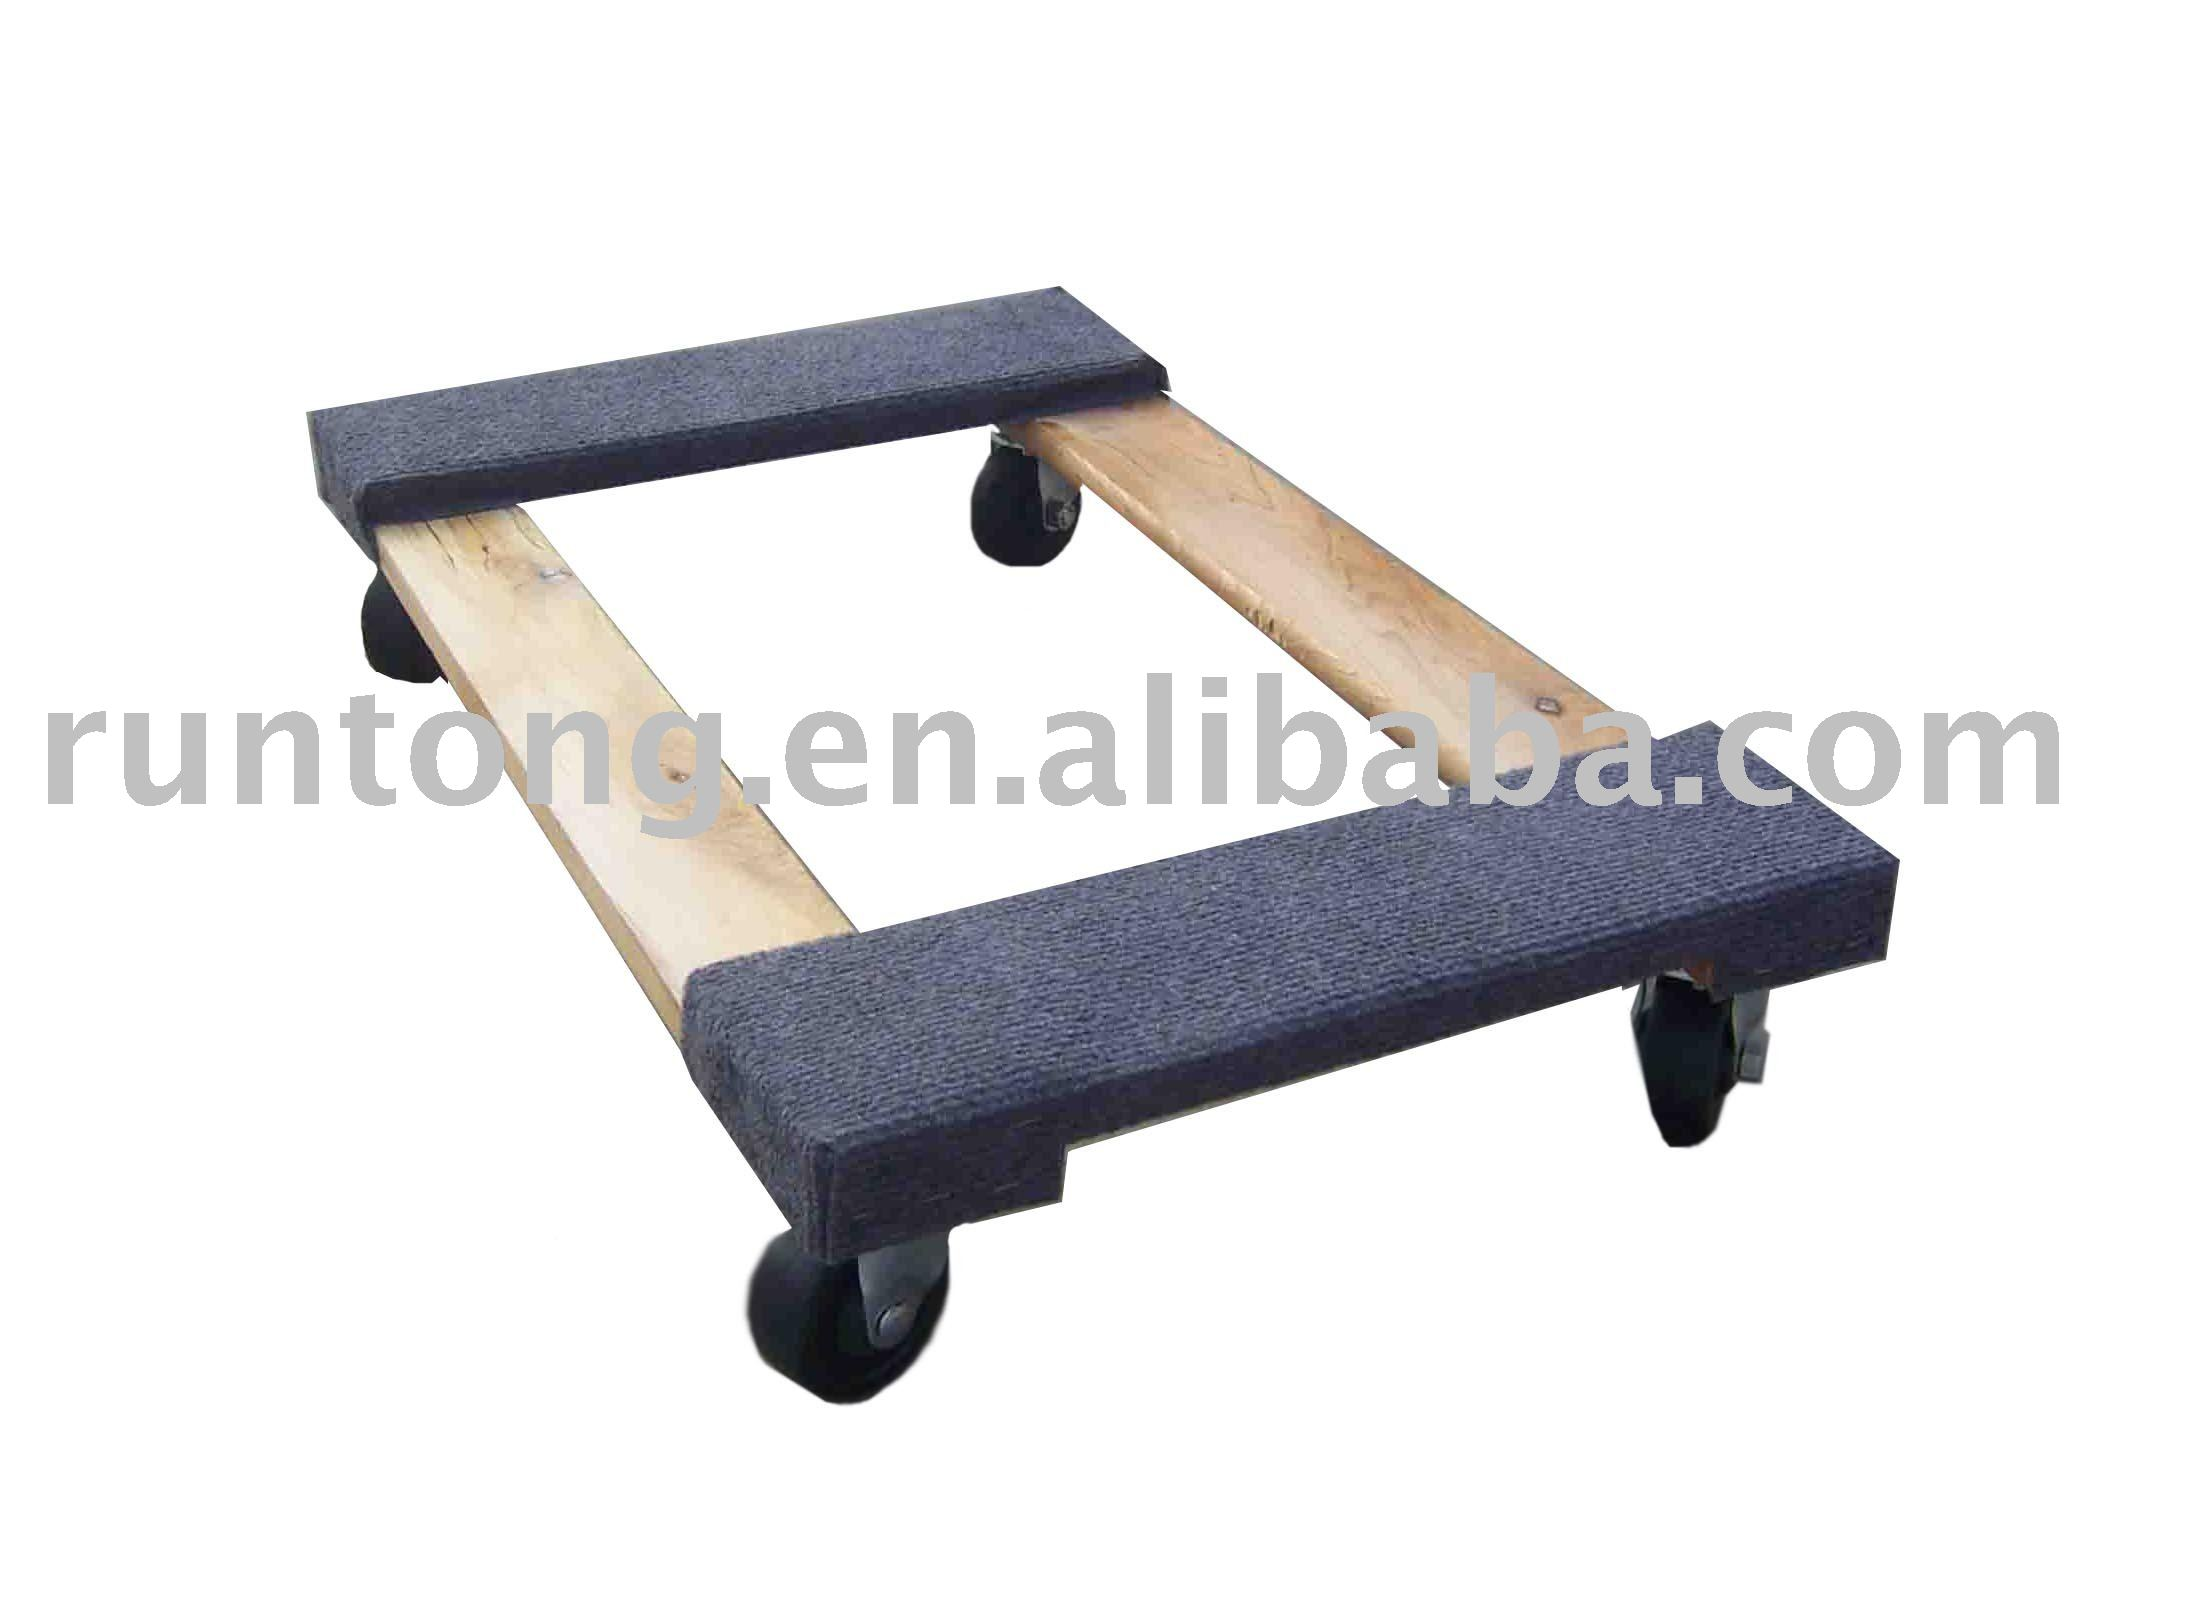 Qingdao Runtong Rolling Dolly Moving Dolly Cart Buy Rolling